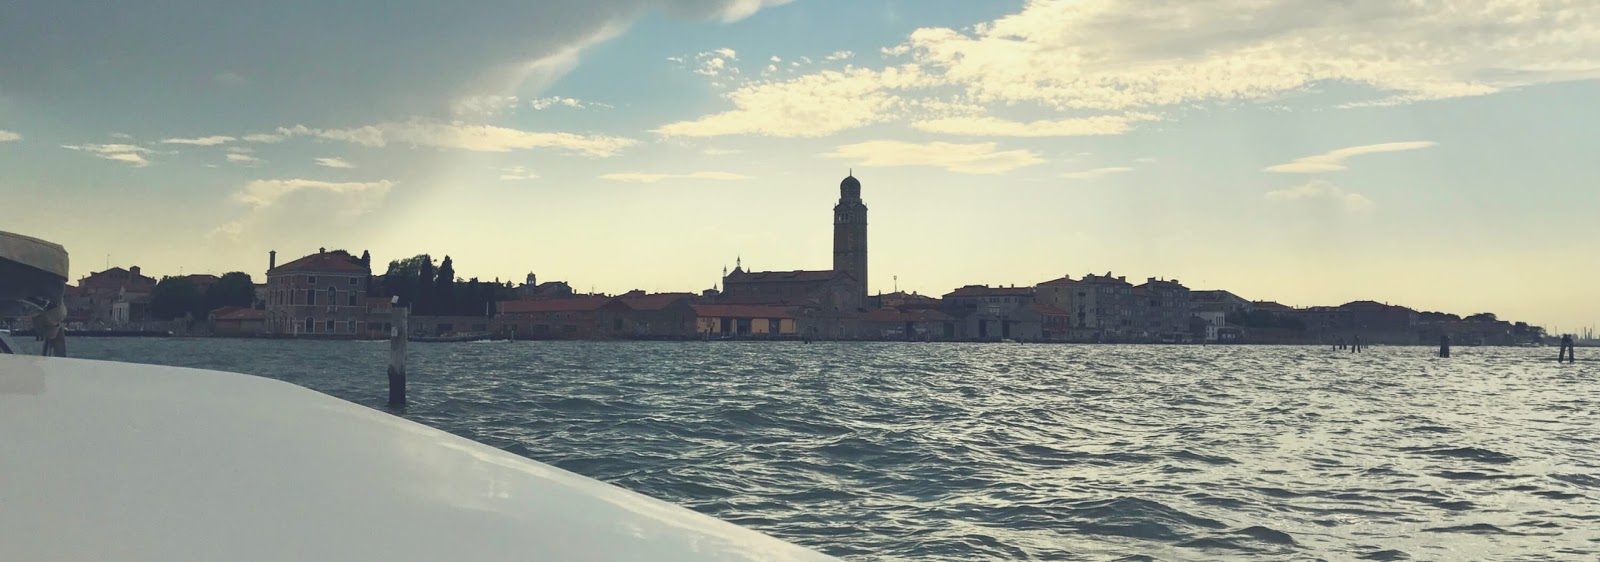 Taxi ride to Venice, venetian architecture against a cloudy sky